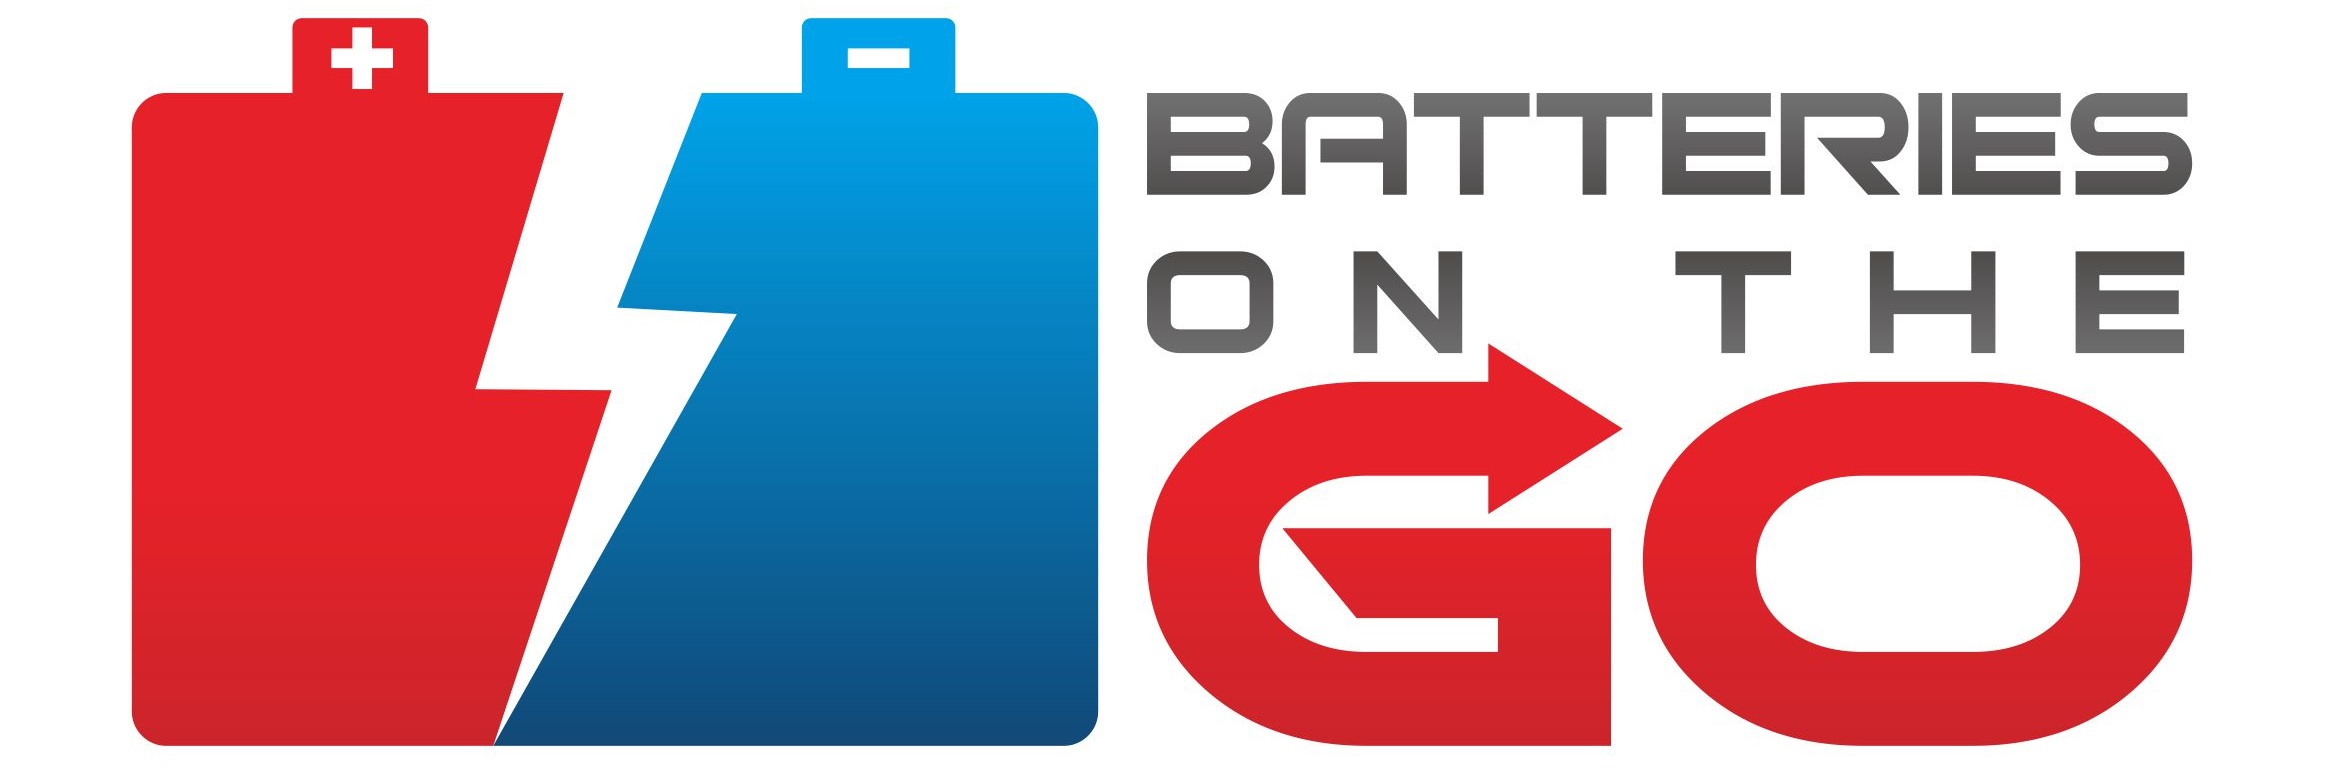 Mobile Car Battery Replacement, 24/7 Auto Battery Change